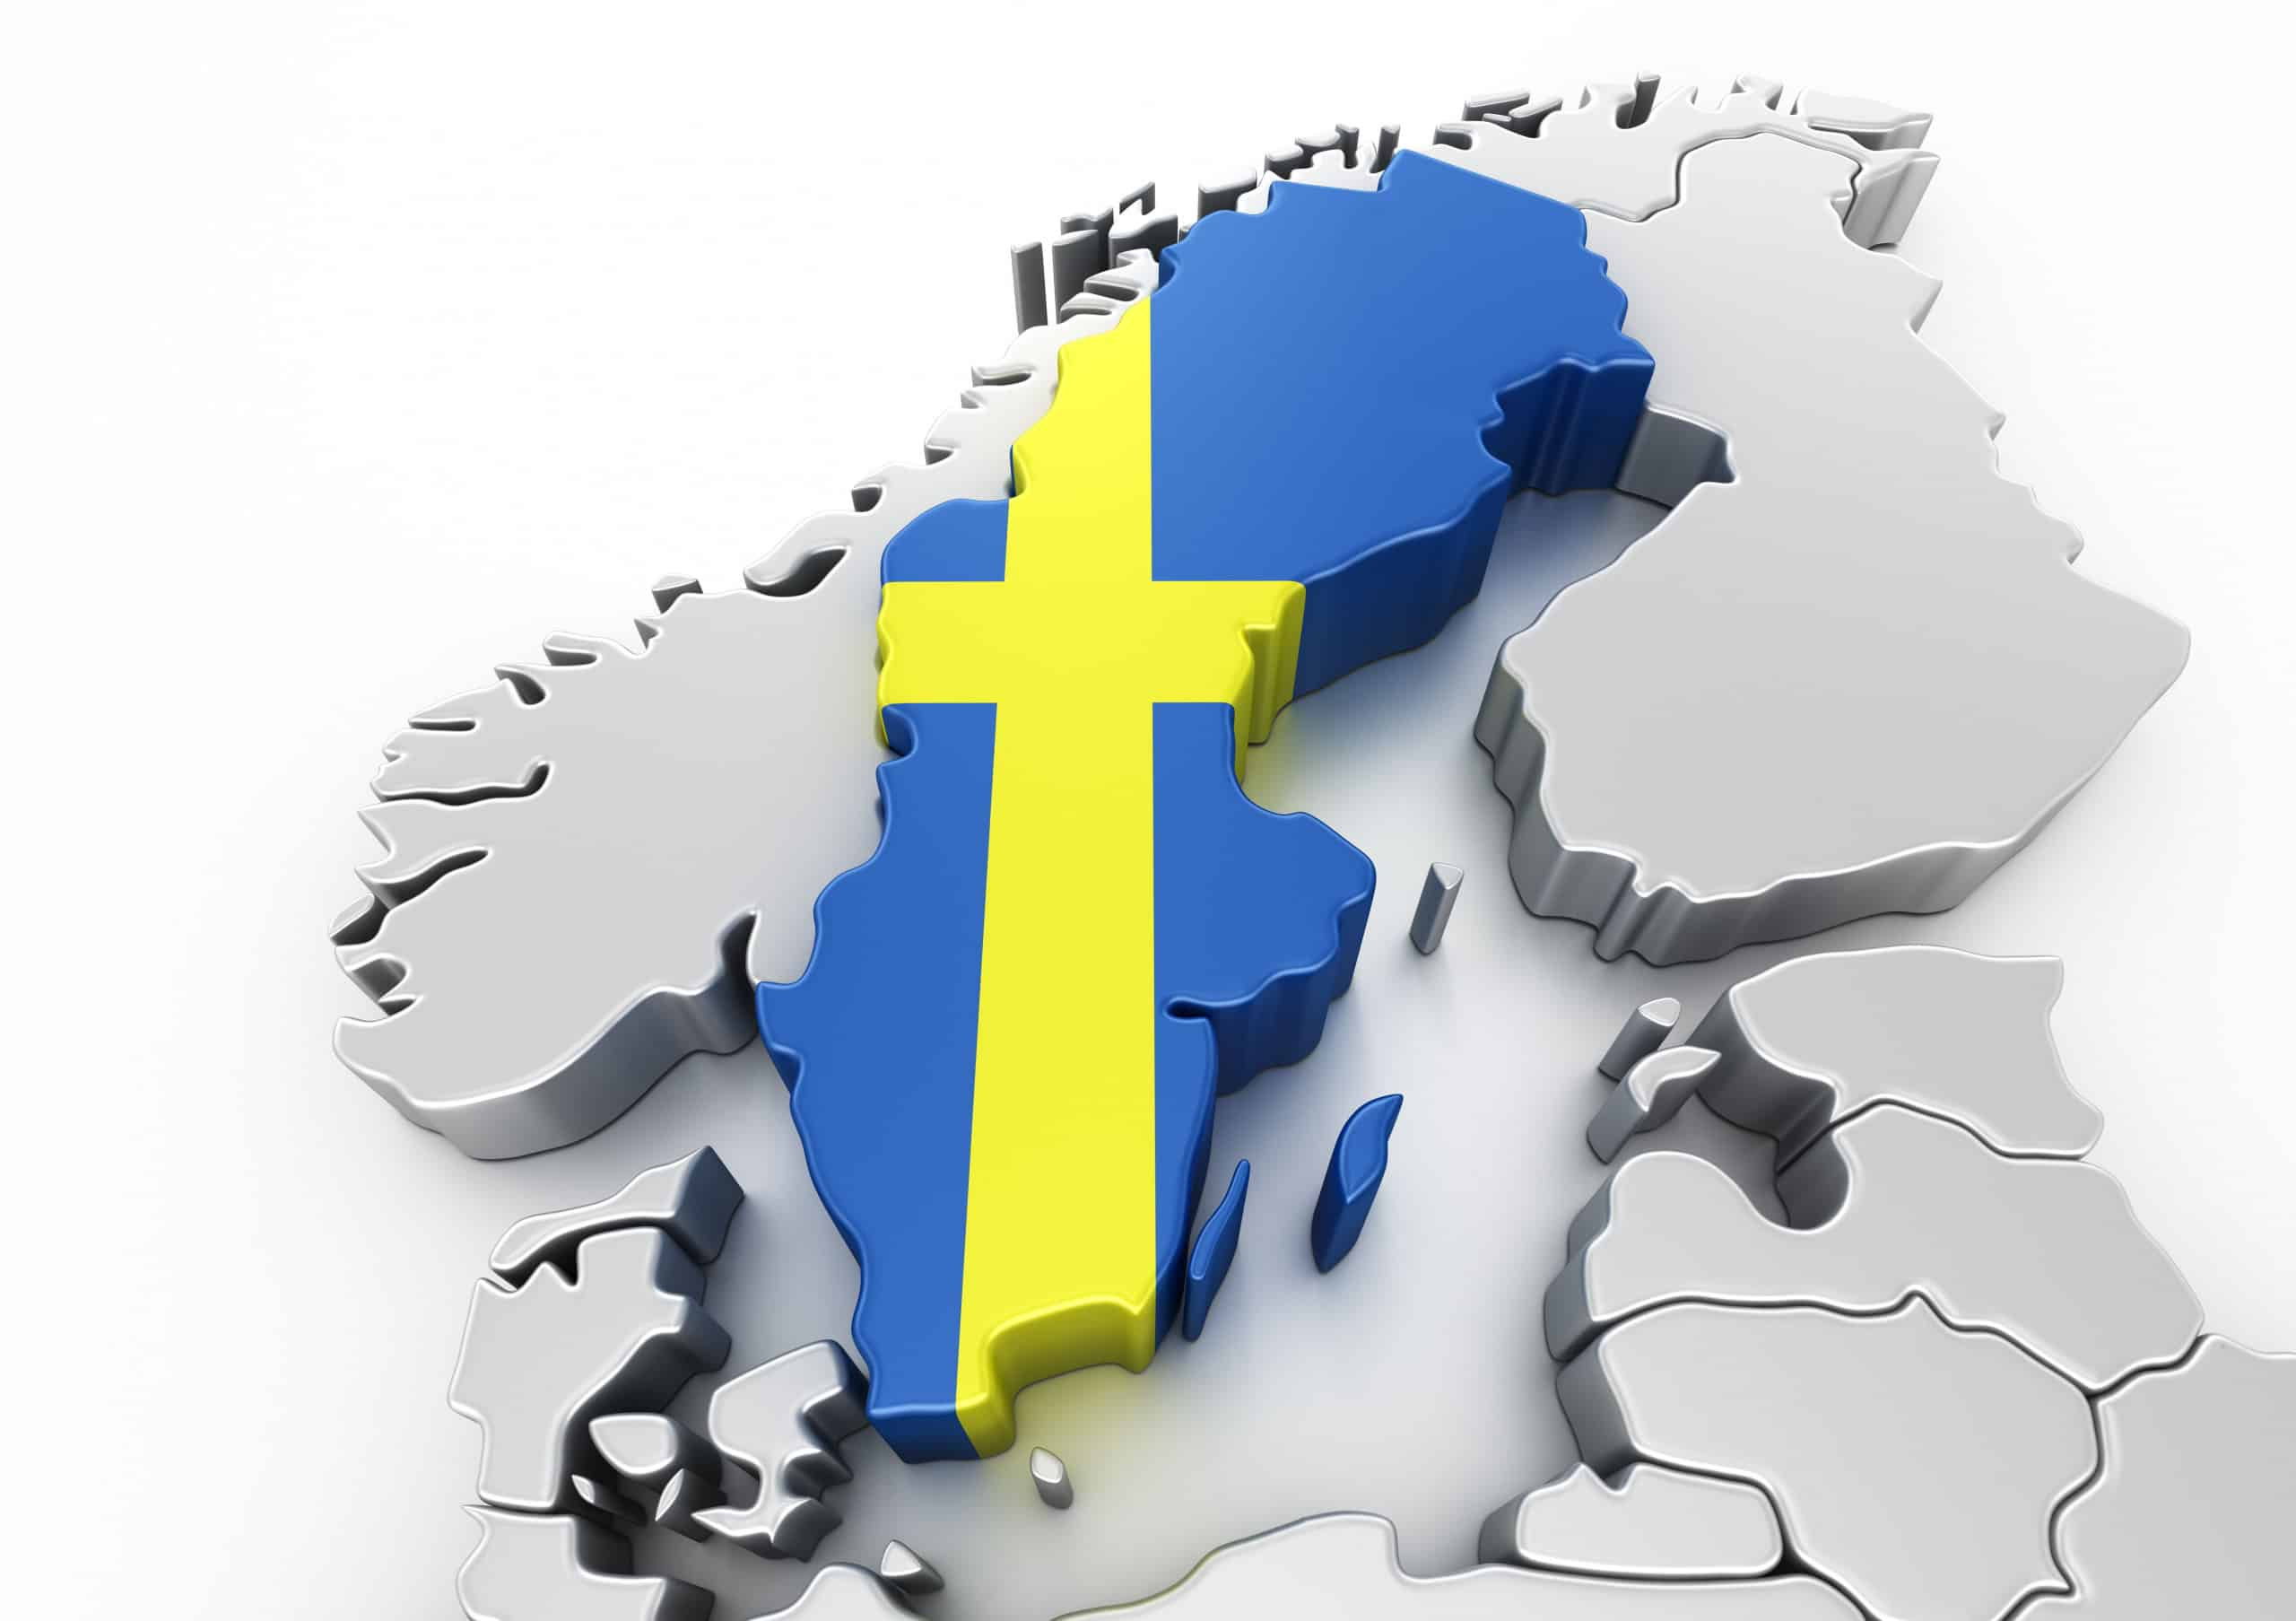 Ten interesting facts about Sweden